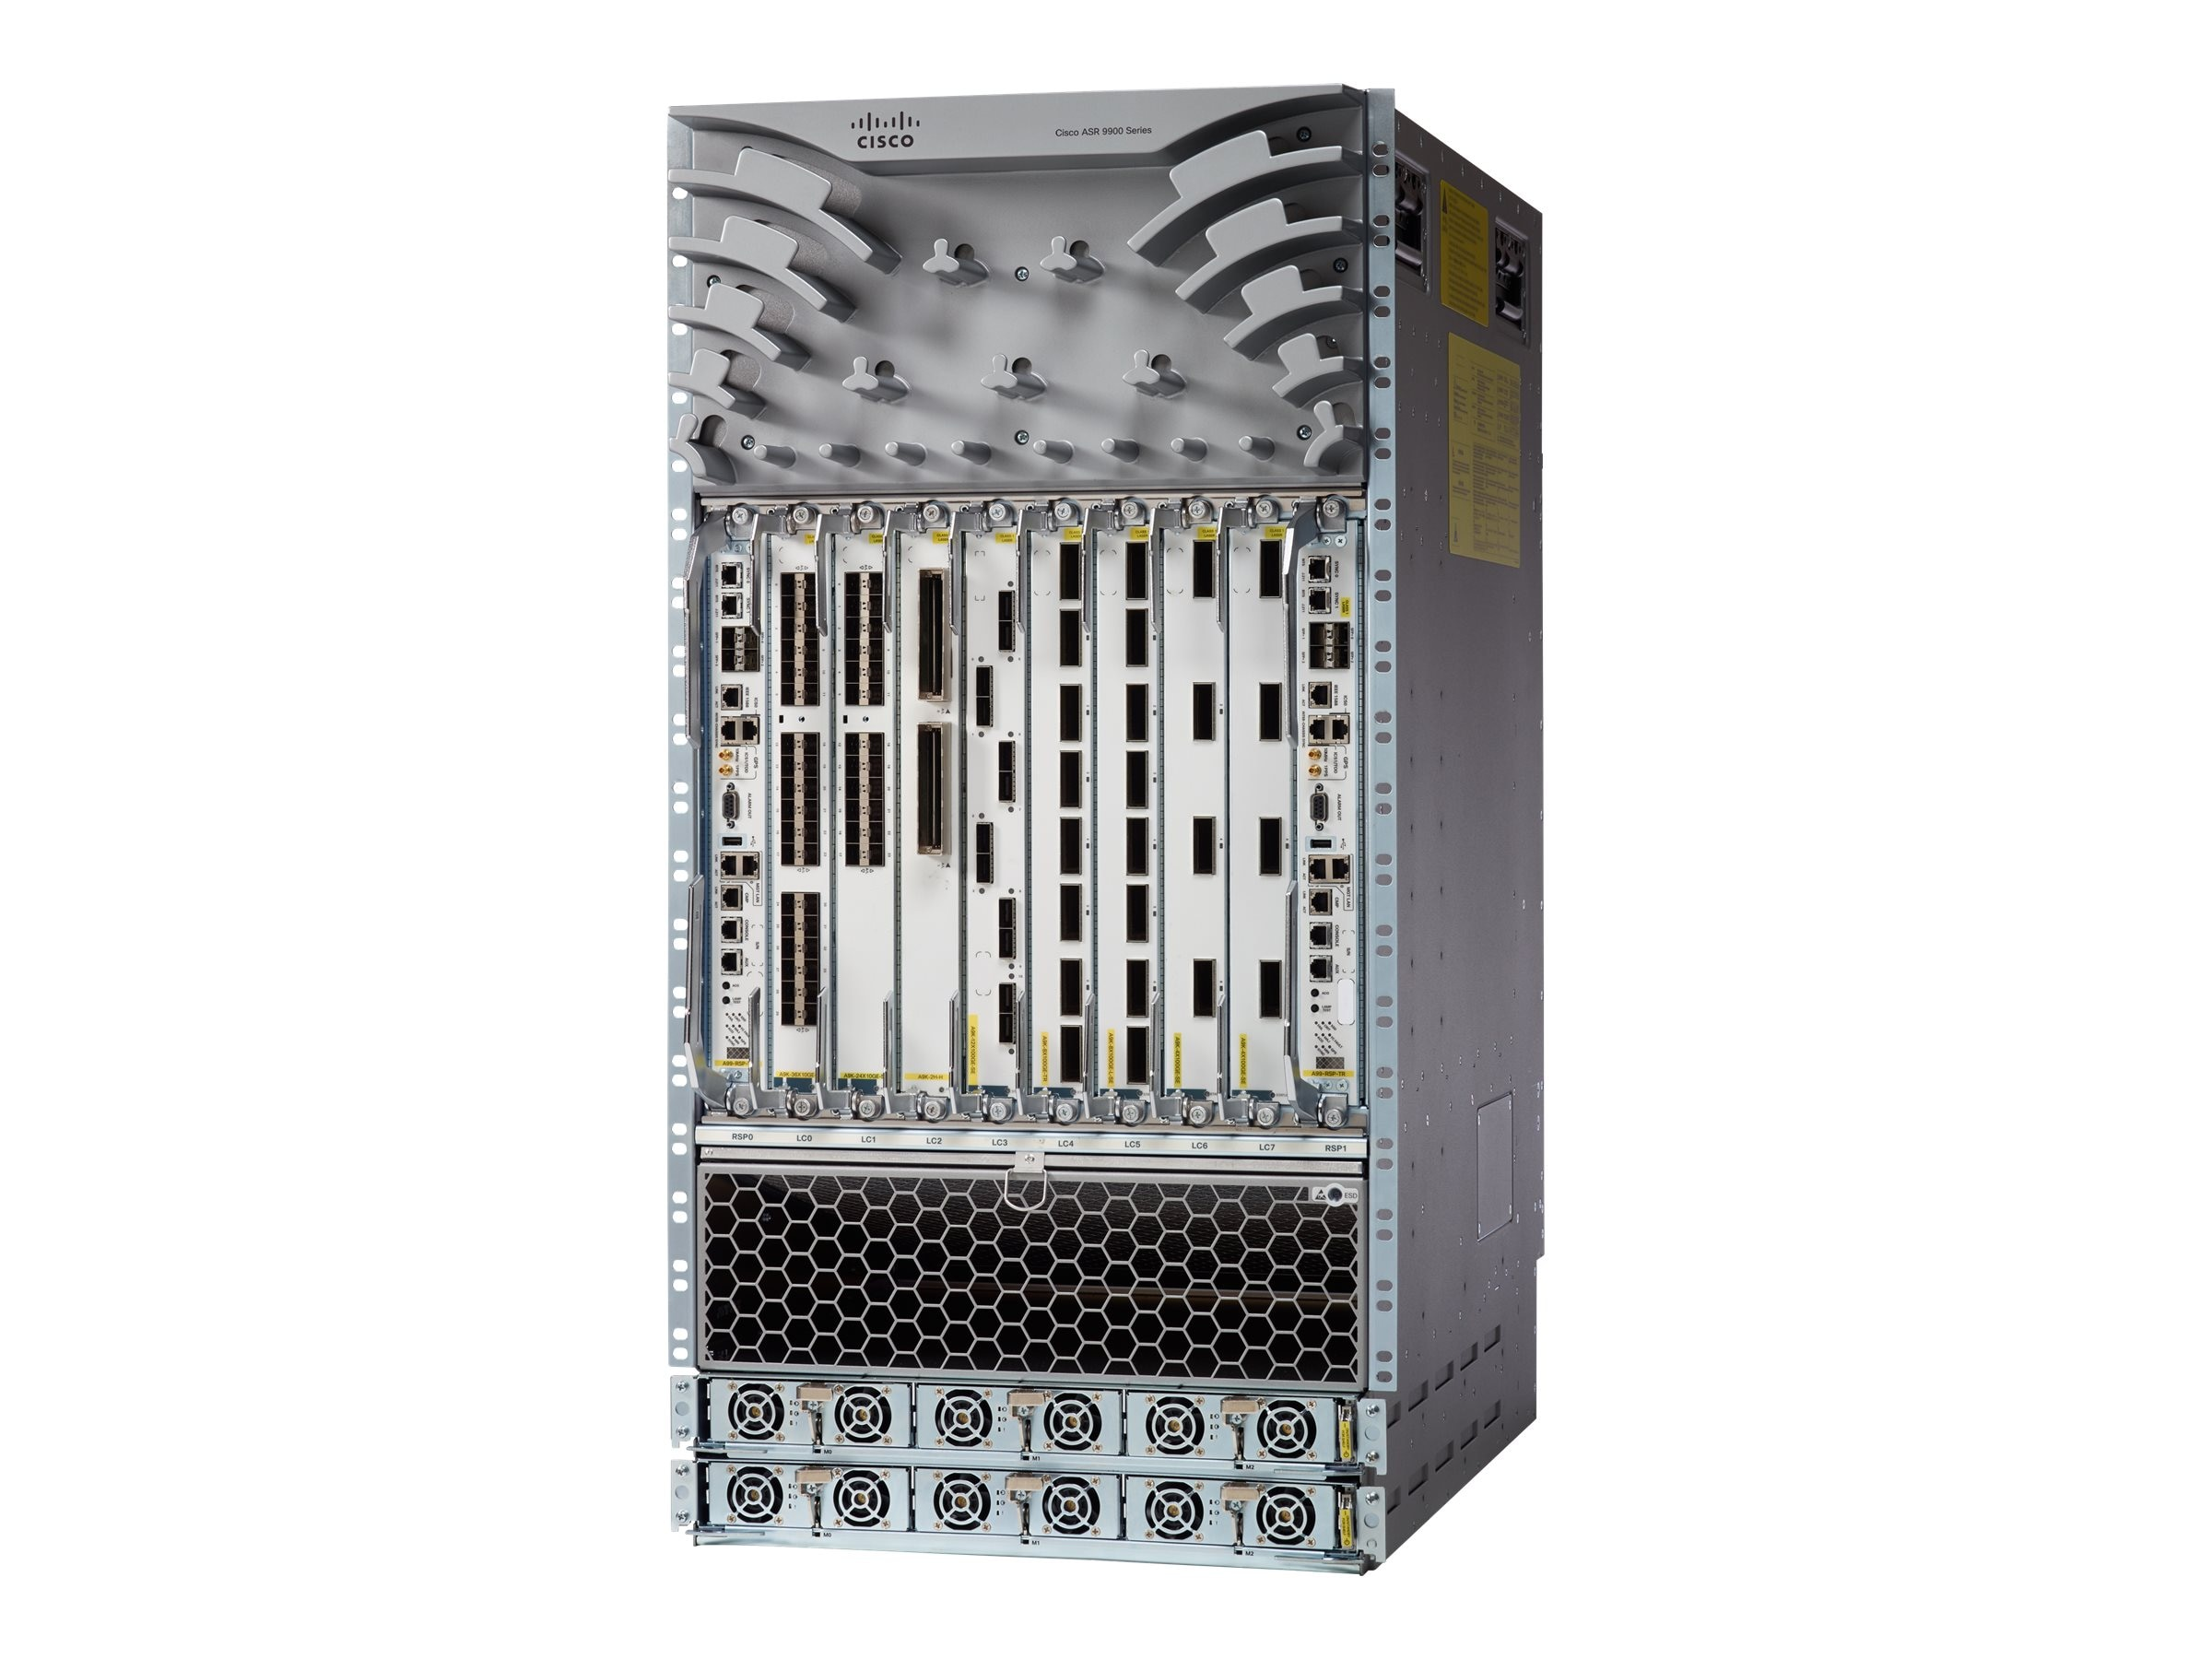 Cisco ASR 9910 8-Line Card Slot Chassis